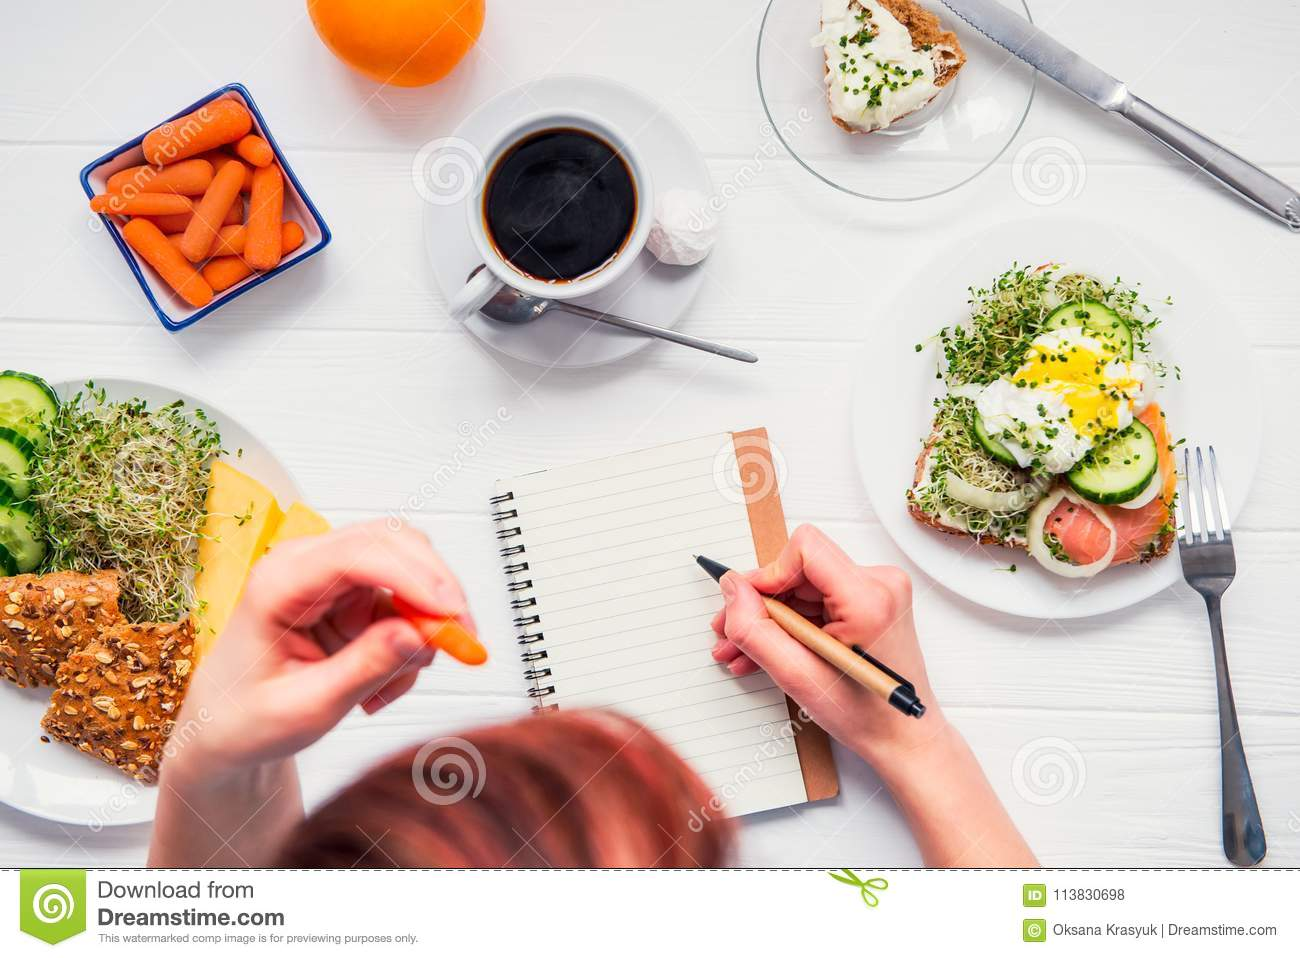 Morning habits of successful people. Day planning and healthy meal. Woman eating carrot and writing in notebook on the served for